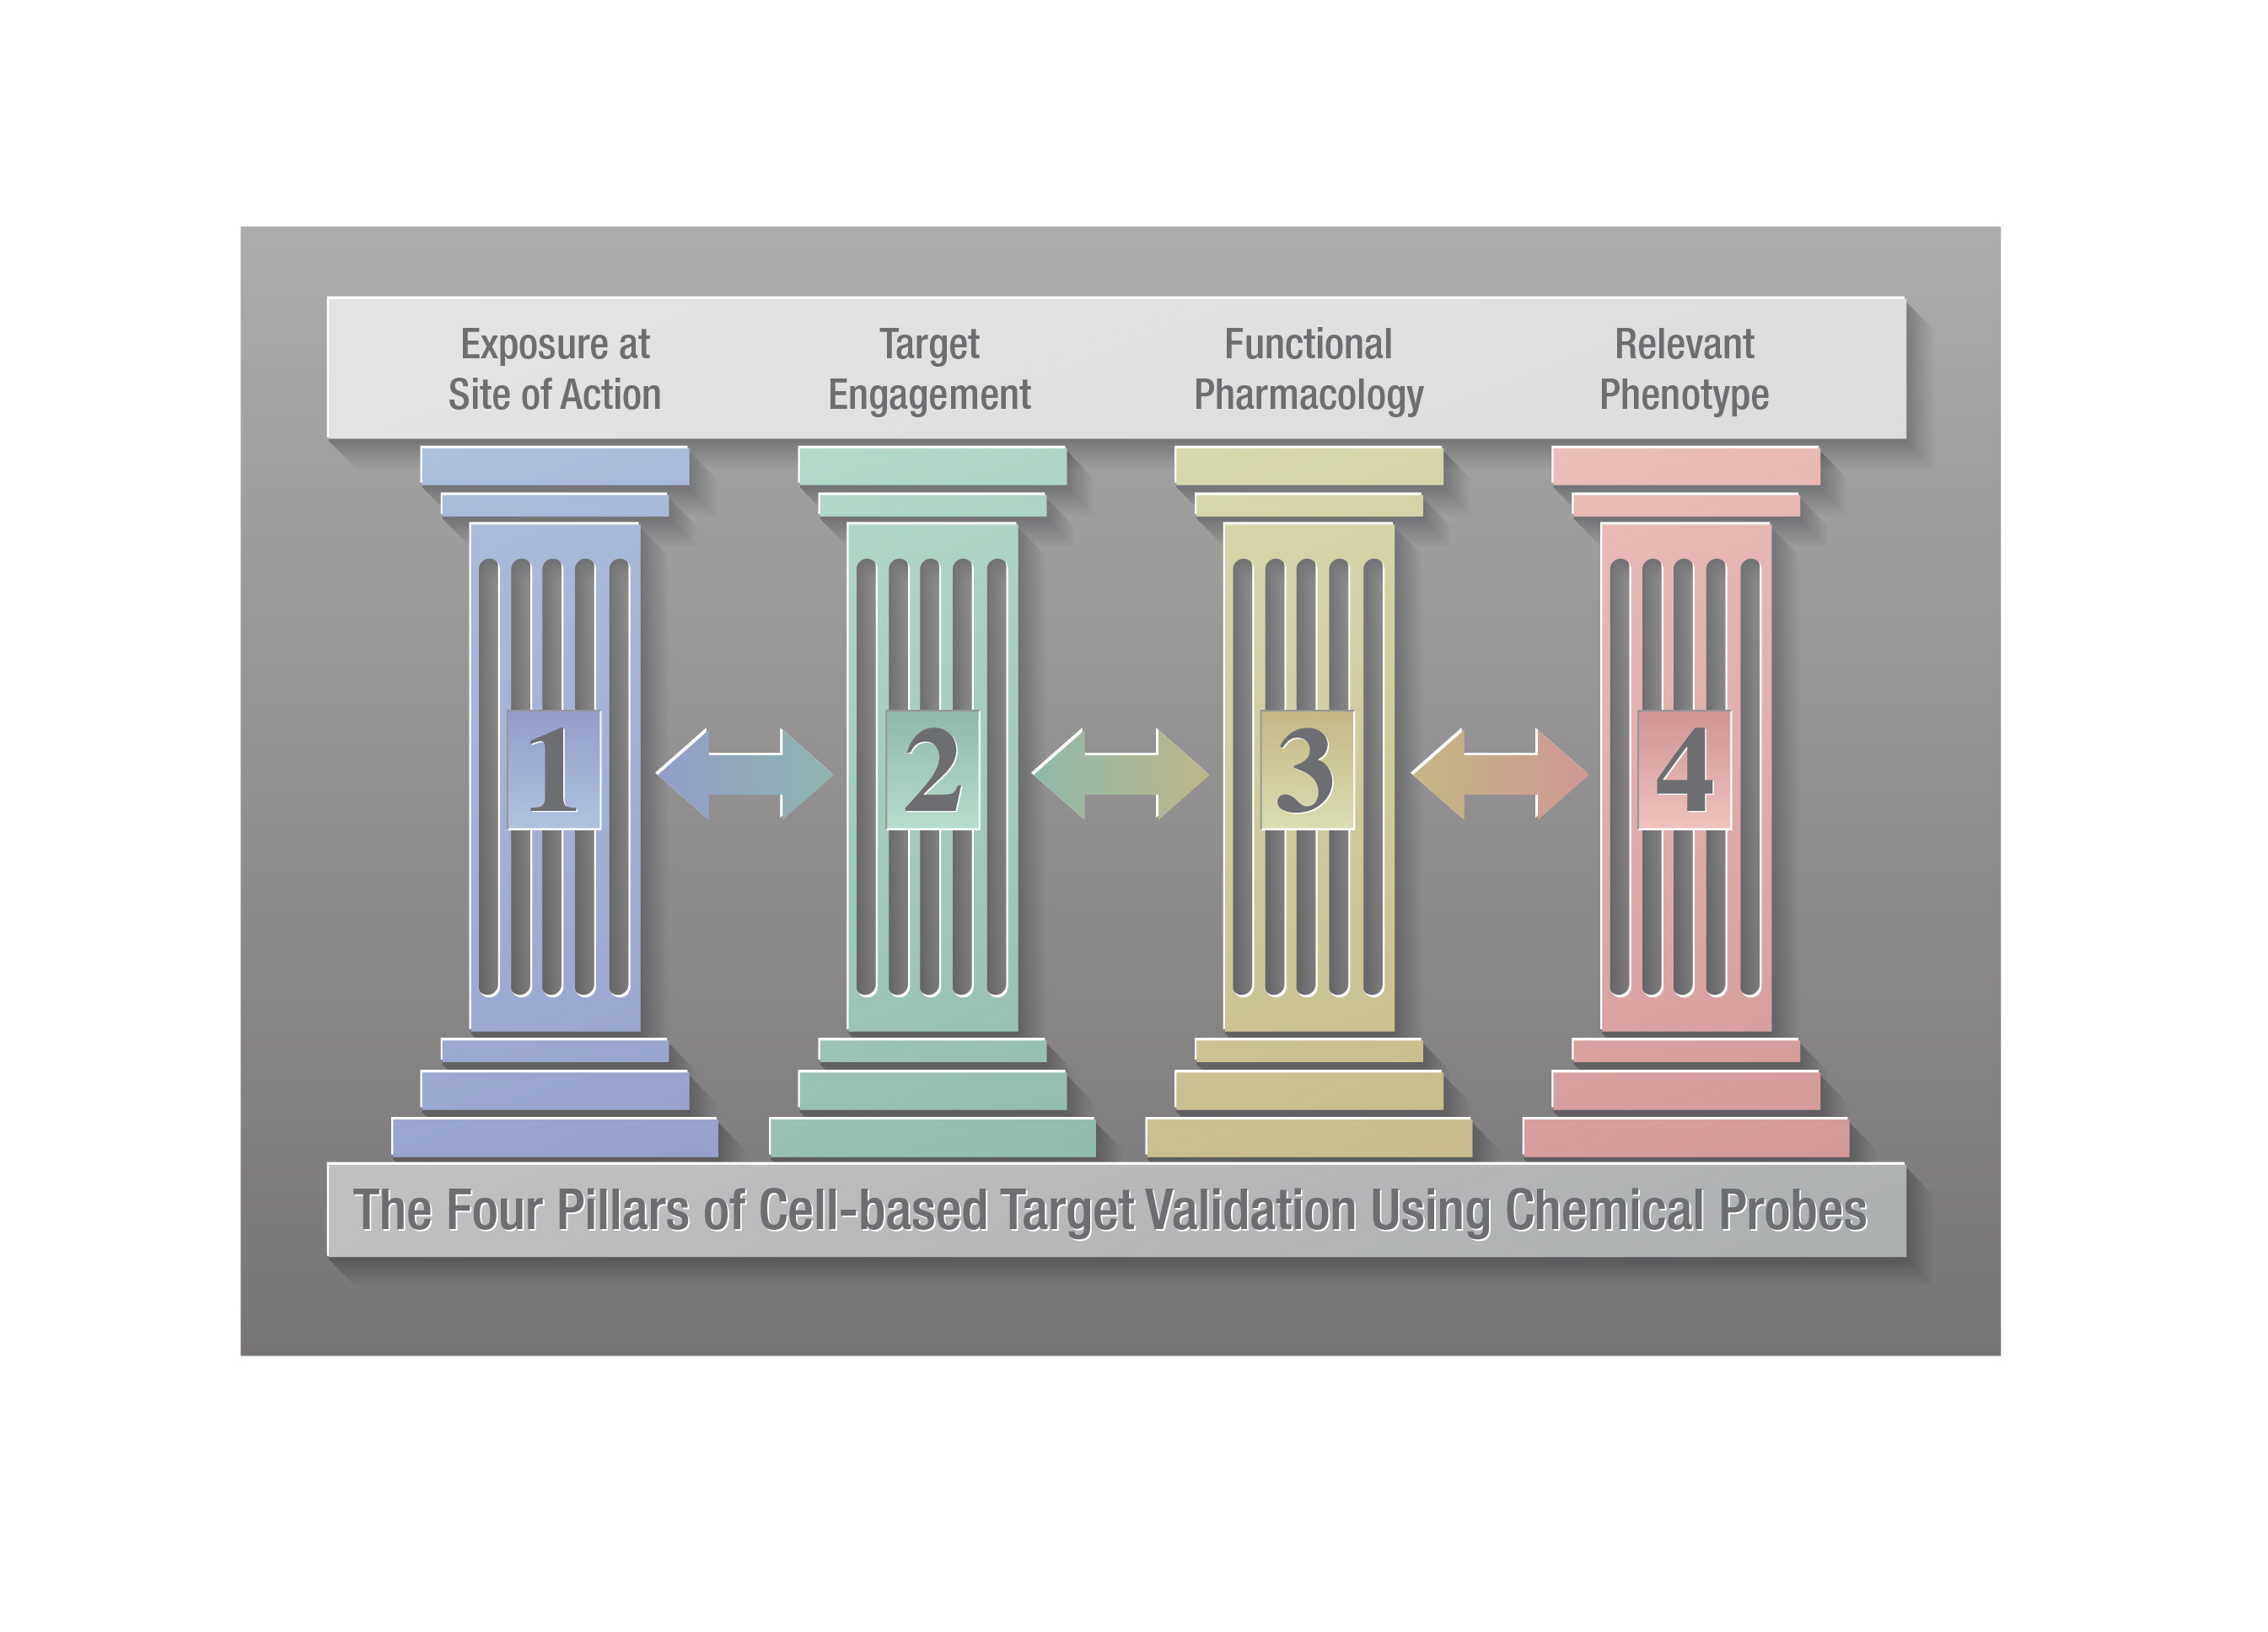 The four pillars of cell-based target validation using chemical probes